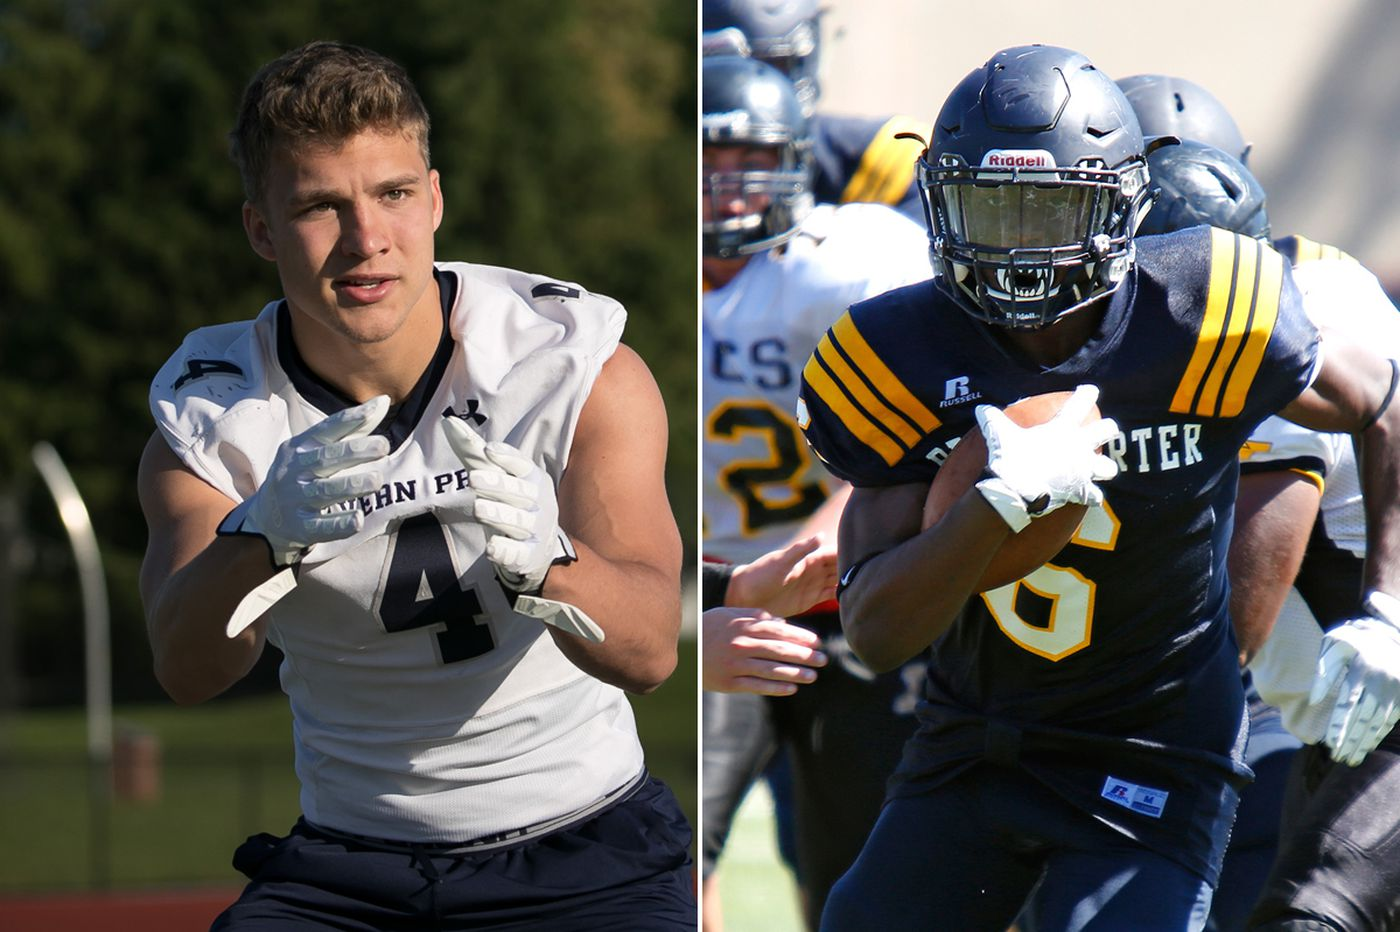 Malvern Prep's Keith Maguire and Penn Charter's Edward Saydee are co-MVPs of Inter-Ac football team